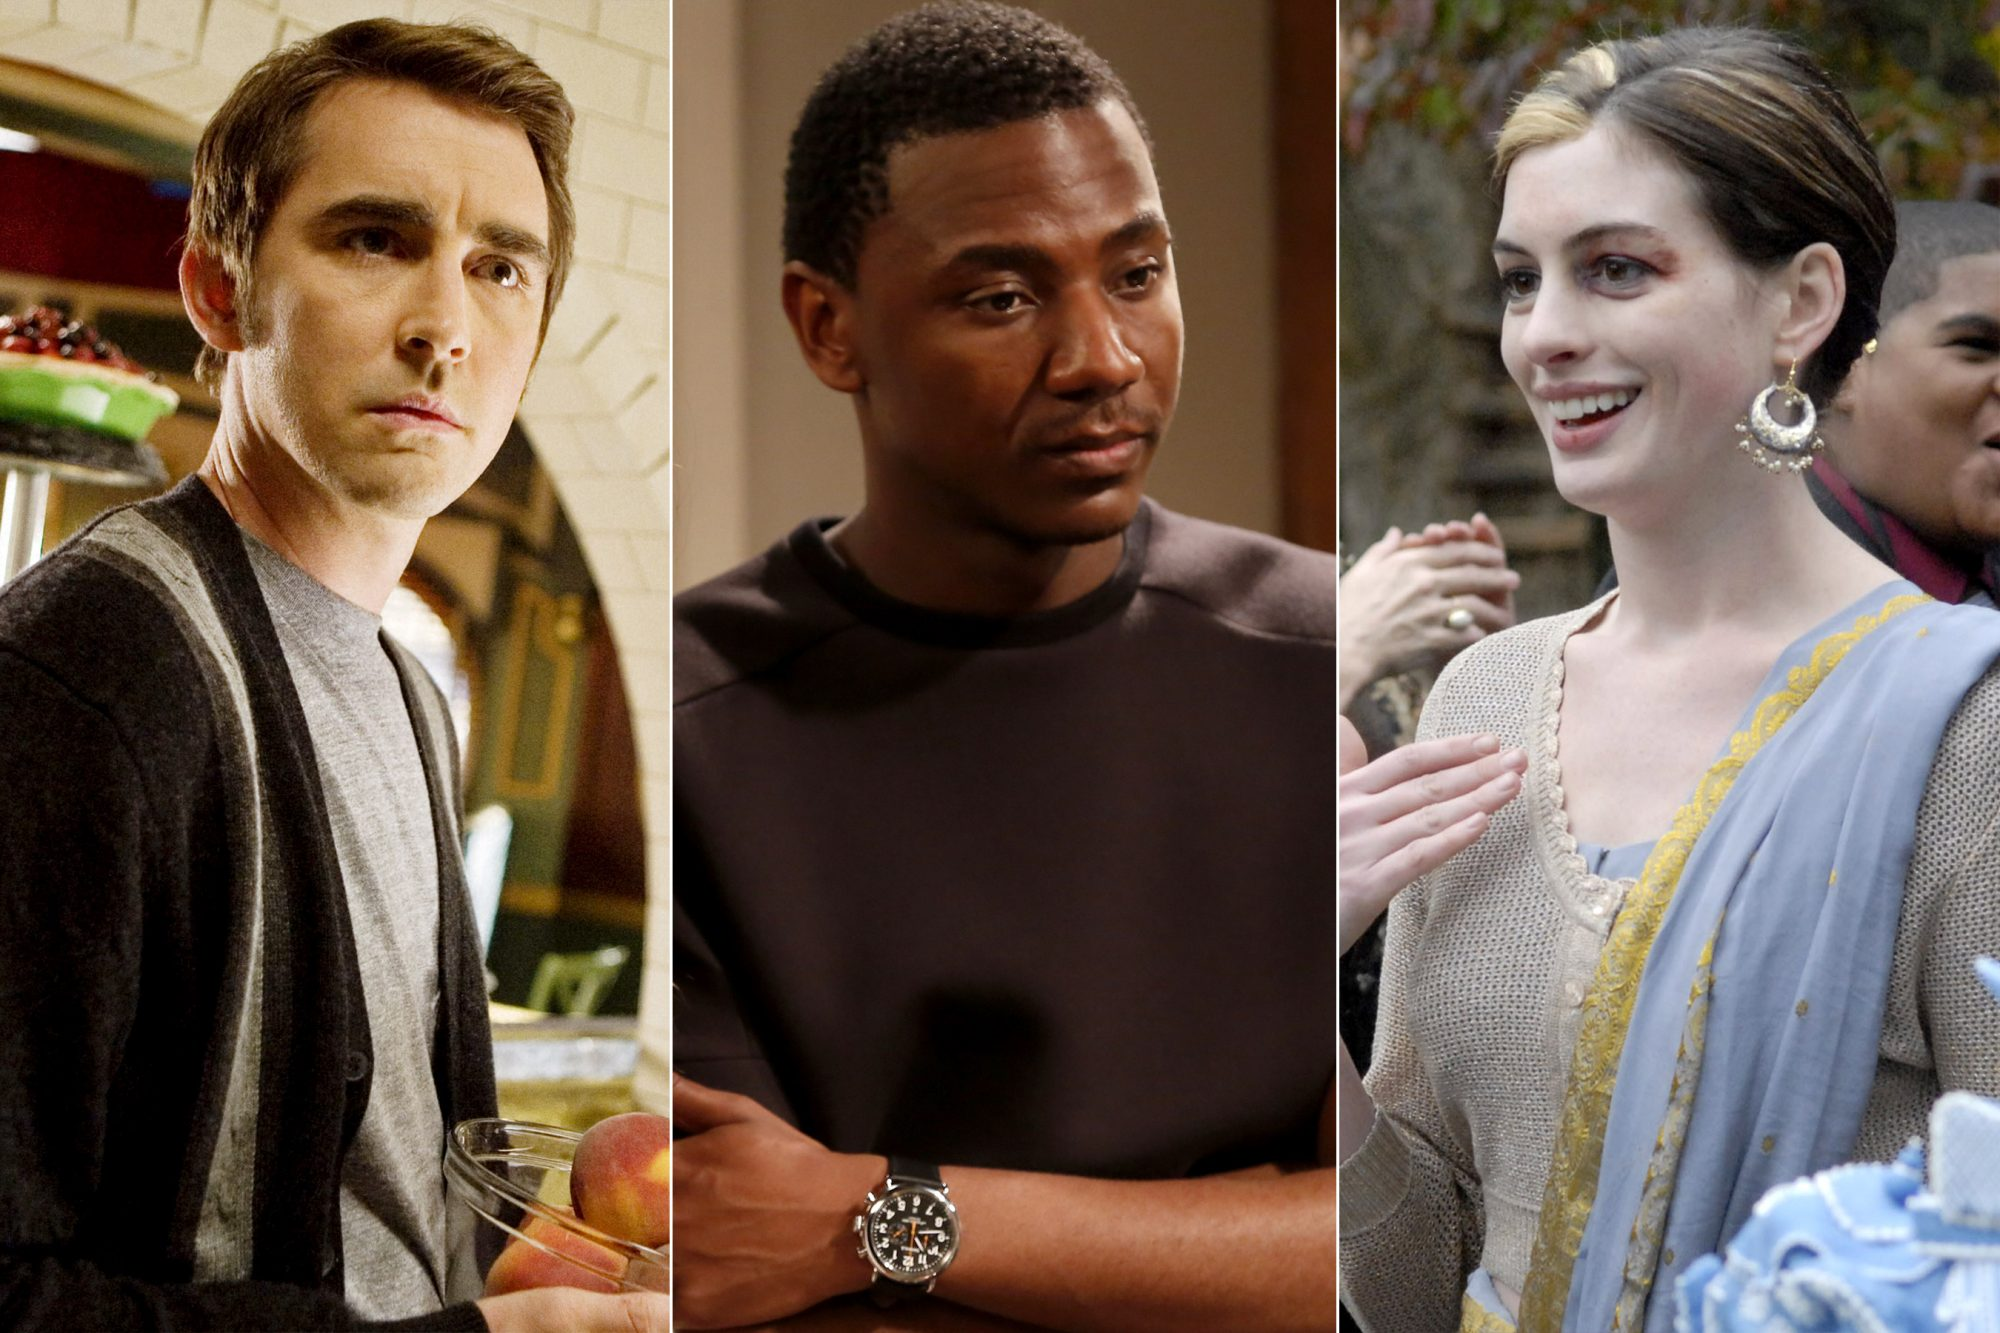 Pushing Daisies/ The Carmichael Show/ Rachel Getting Married